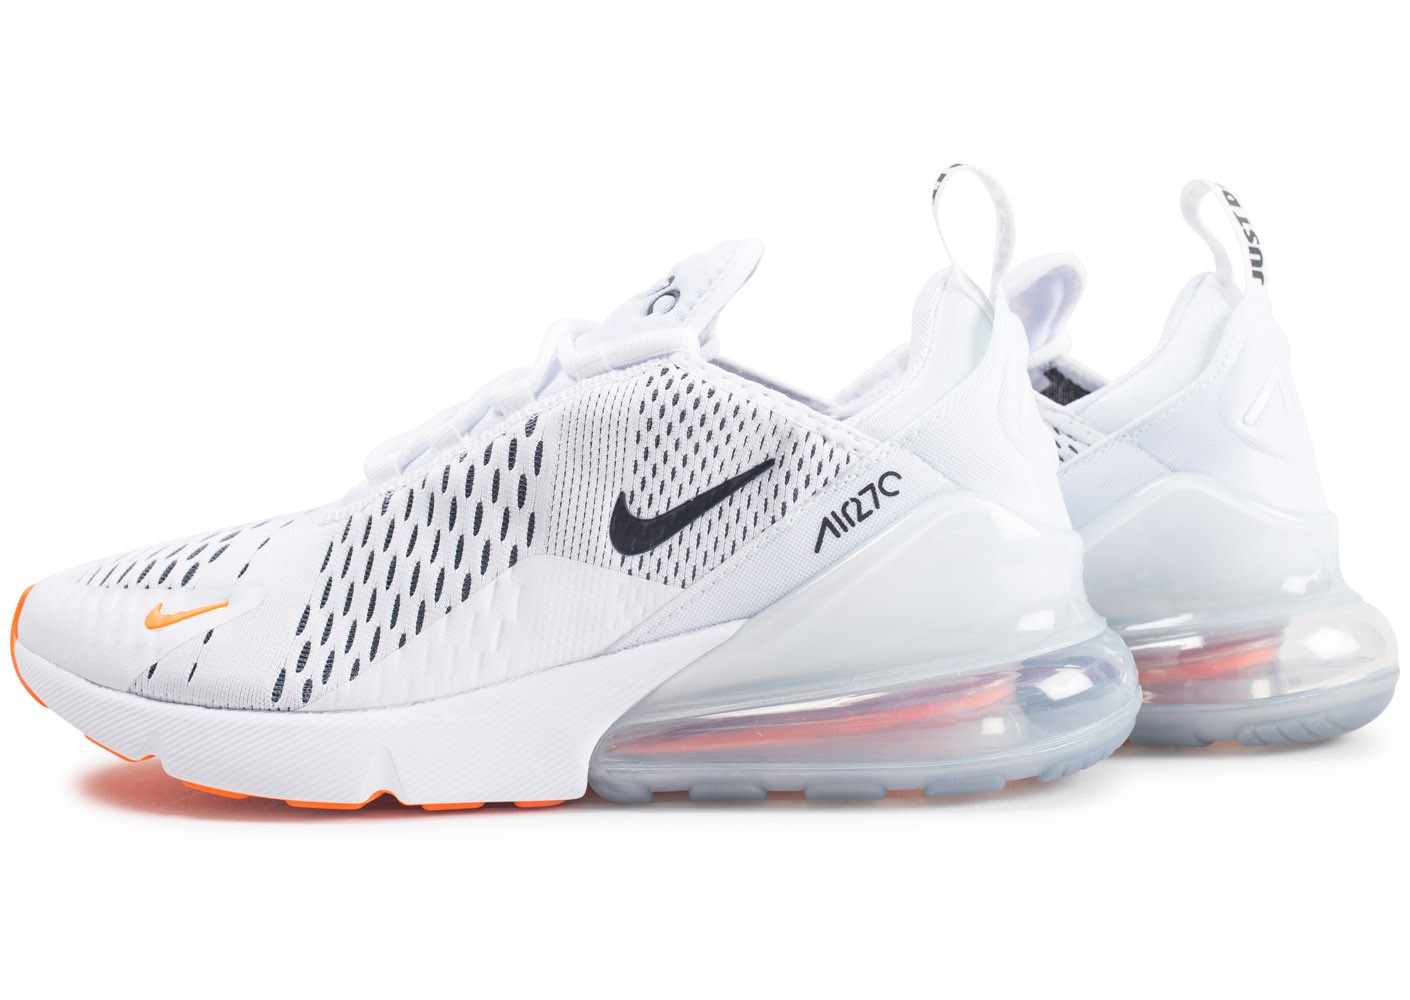 Nike Air Max 270 Just do It blanc total orange - Chaussures ...